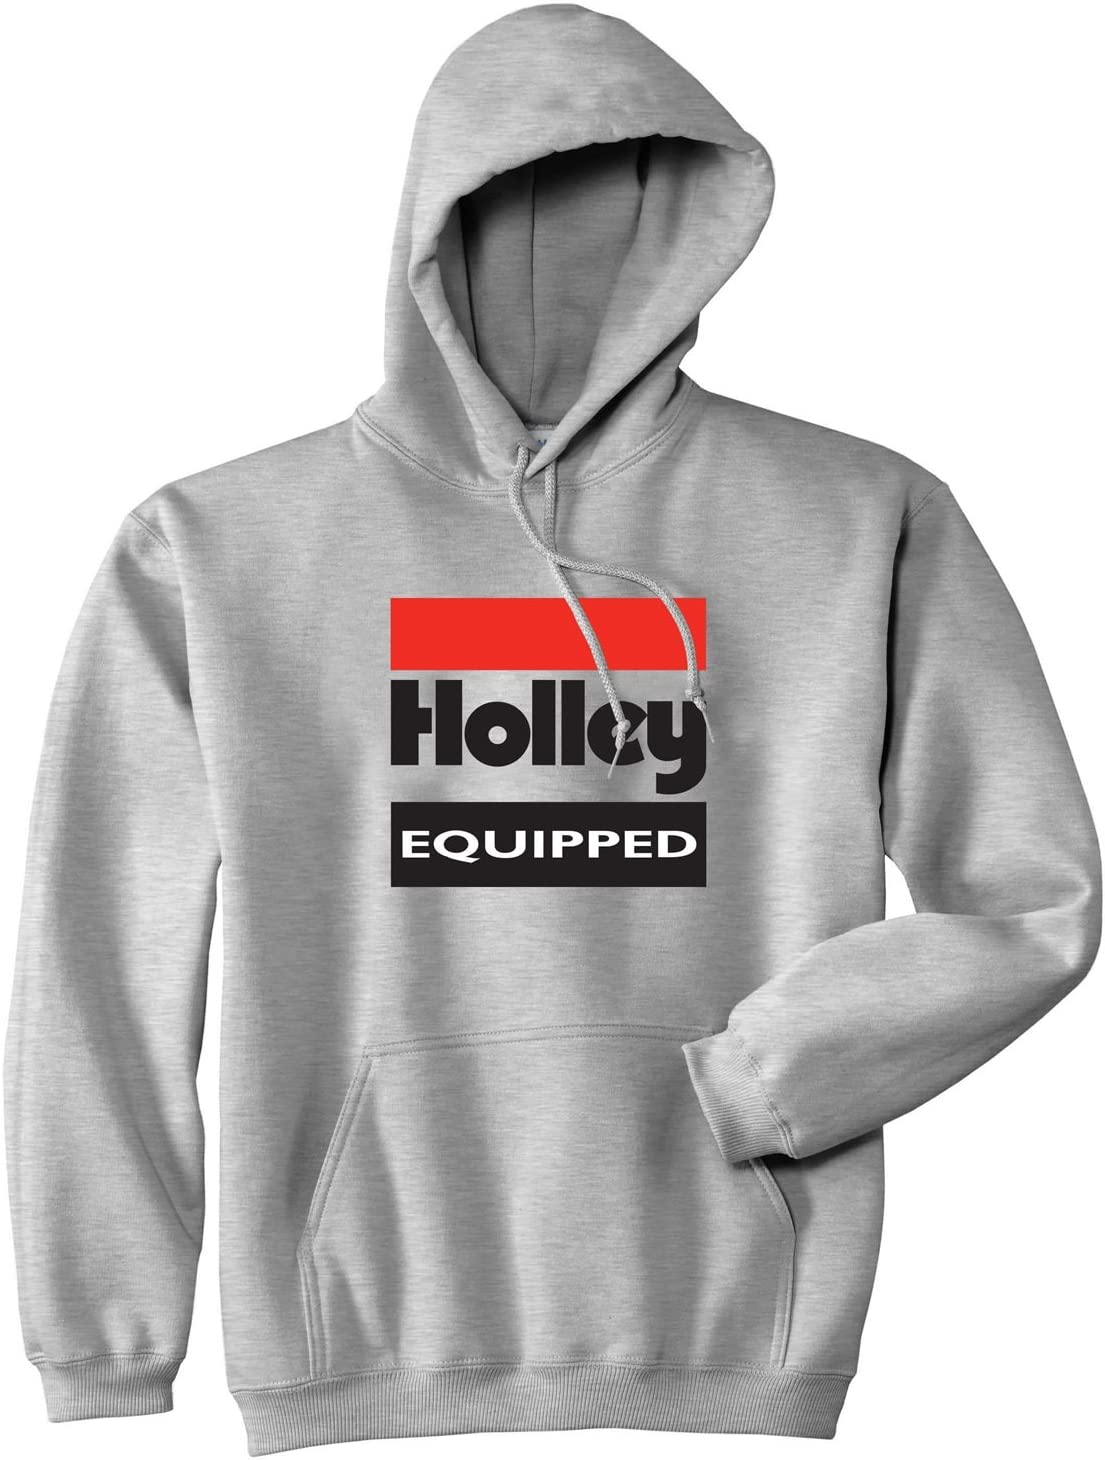 Holley 10023-XLHOL X-Large Equipped Hoodie